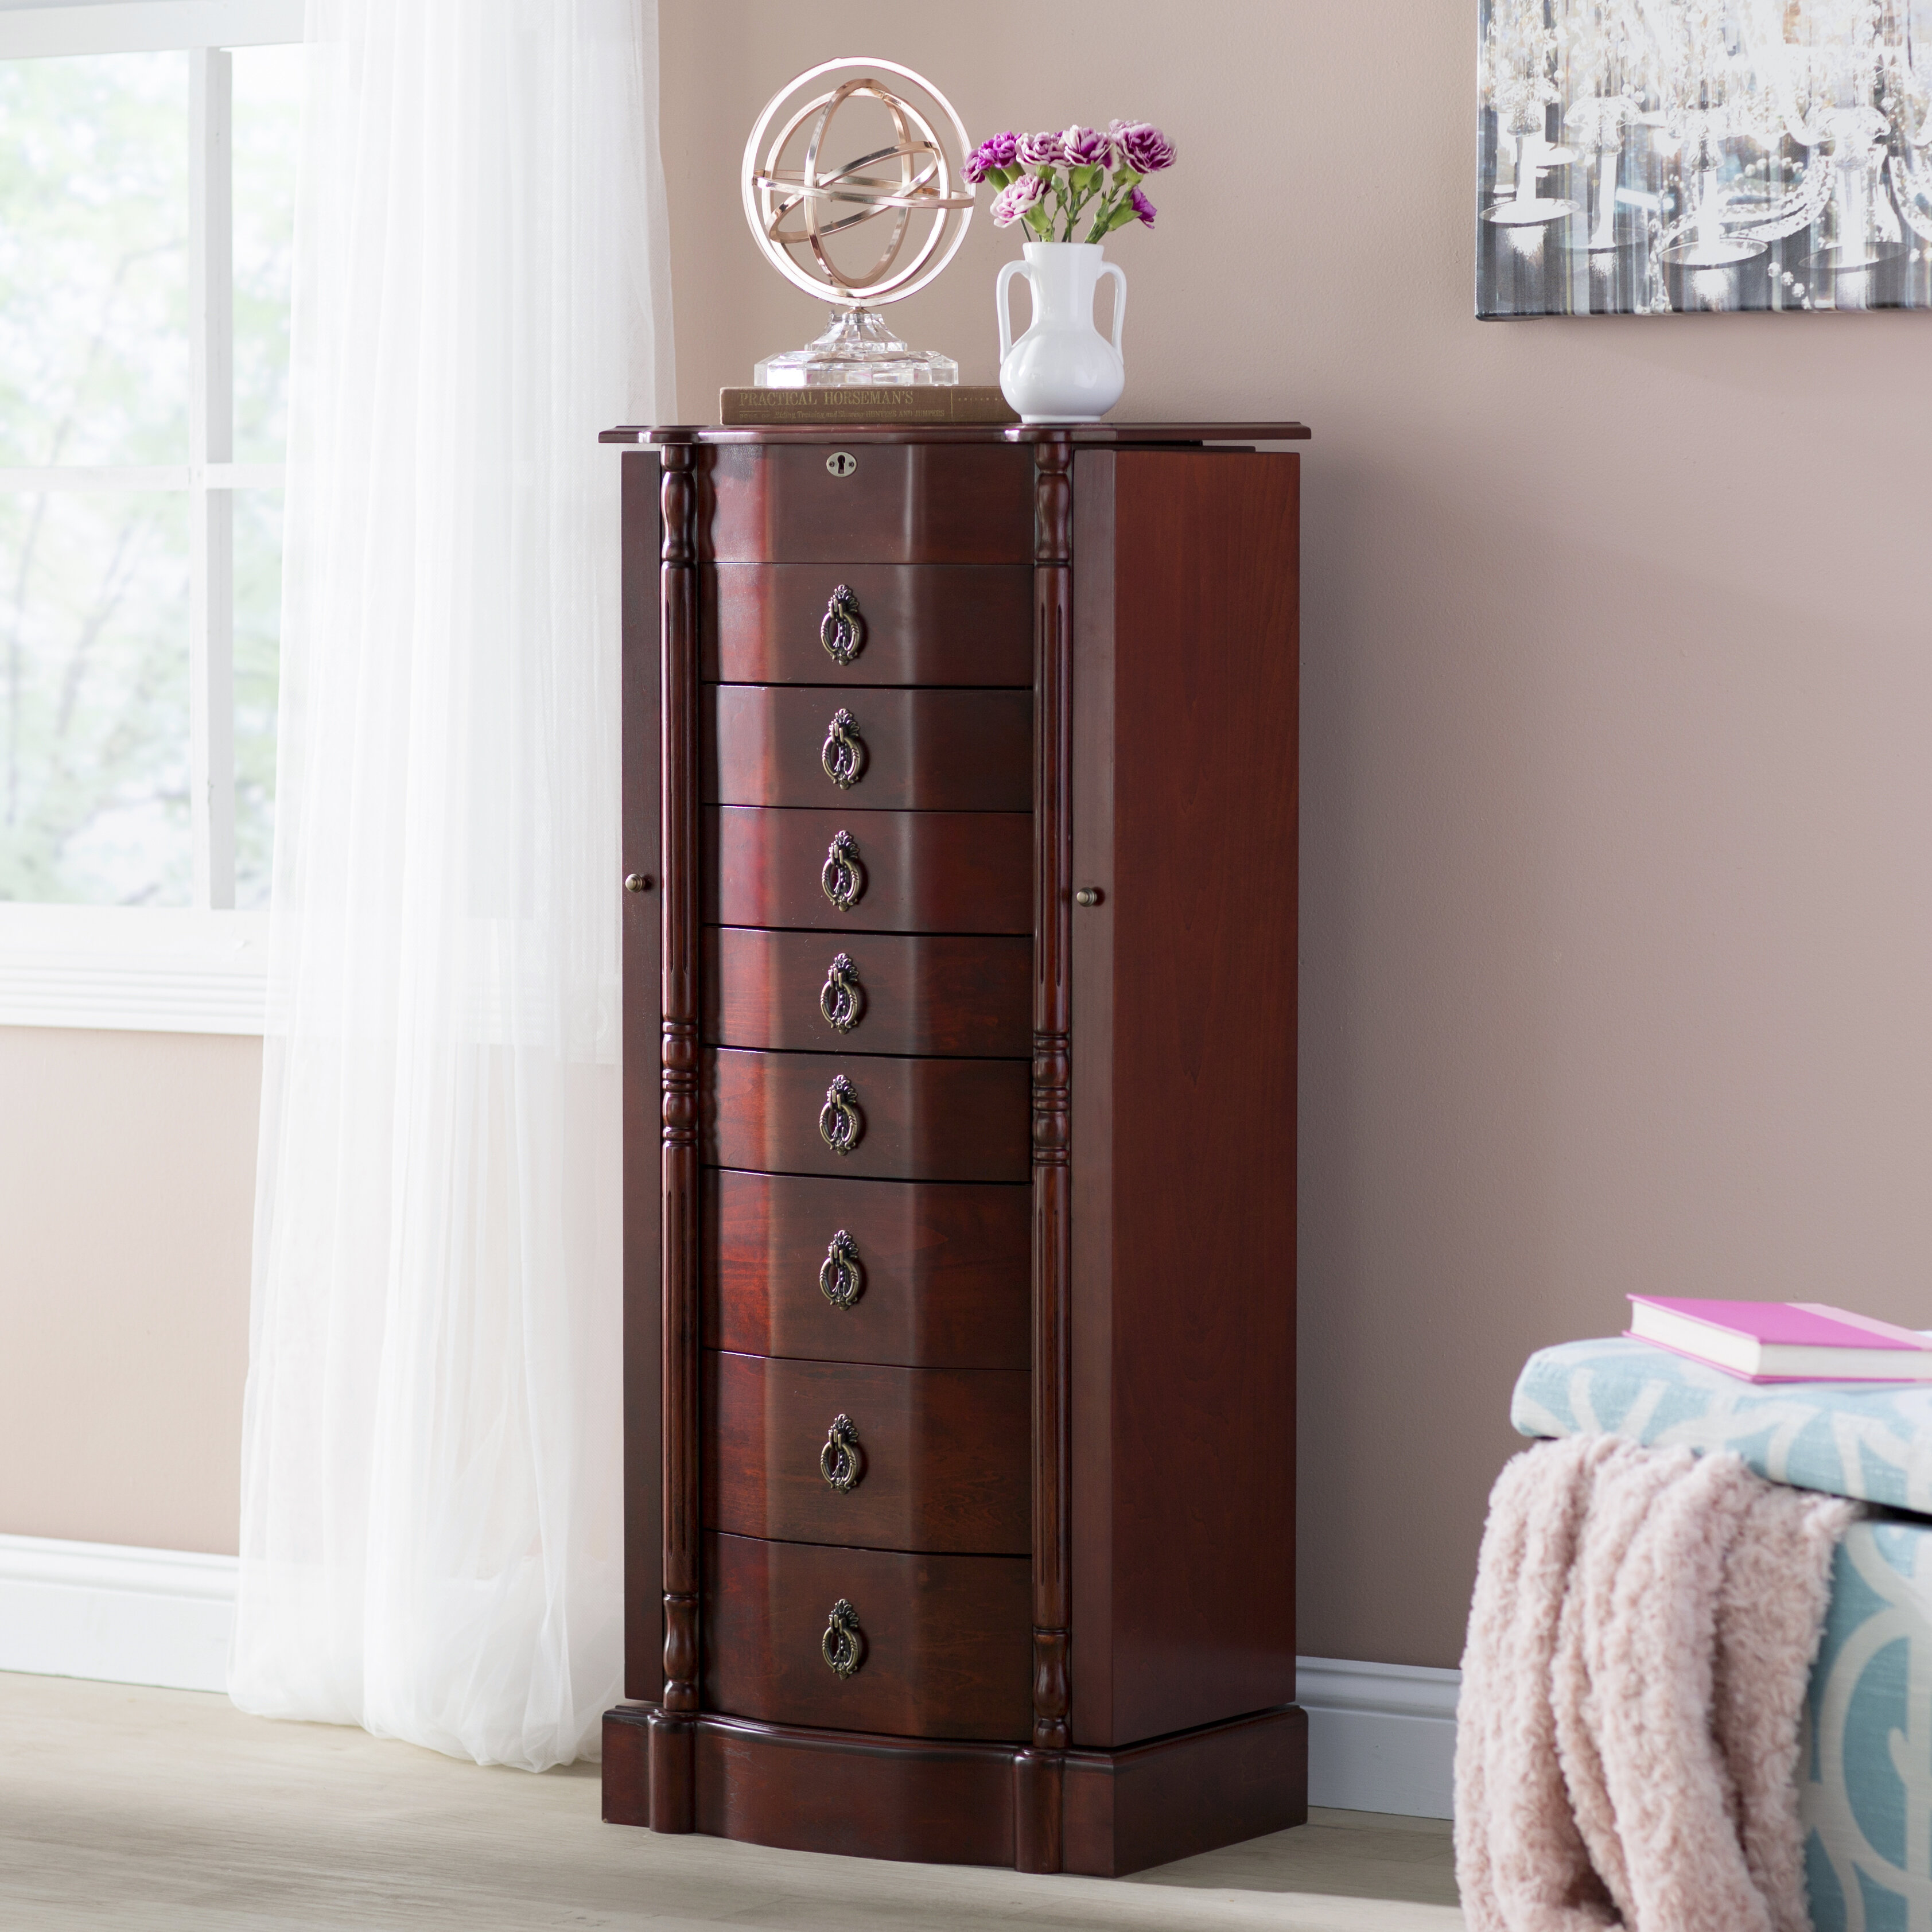 Astoria Grand Kennell Jewelry Armoire Reviews Wayfair